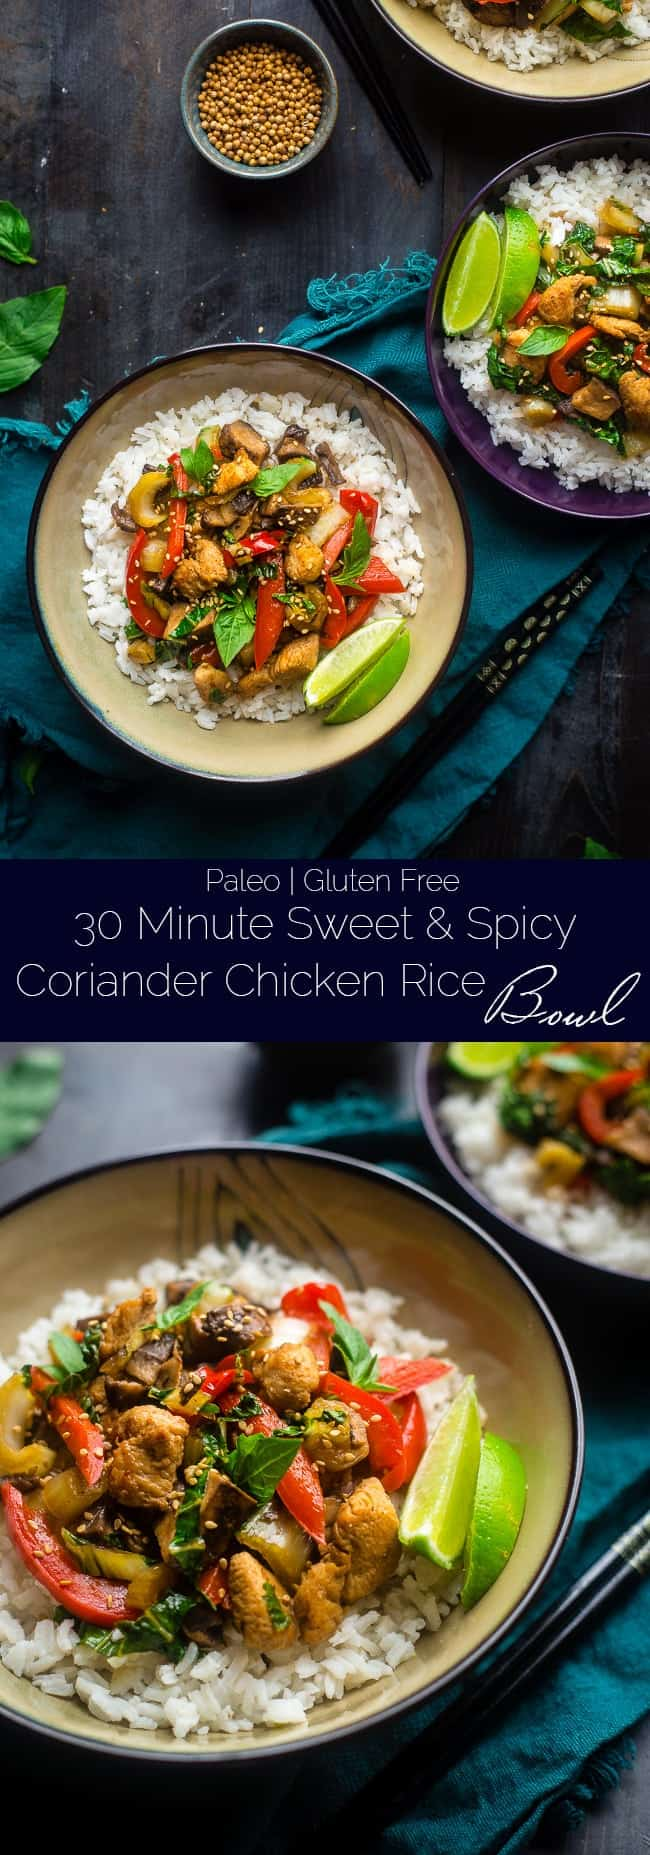 Paleo Coriander Chicken Stir Fry - This healthy chicken stir fry has fresh coriander and a spicy, sweet sauce. It's a healthy, gluten free and paleo friendly meal that's ready in 30 minutes! Perfect for busy weeknights! | Foodfaithfitness.com | @FoodFaithFit